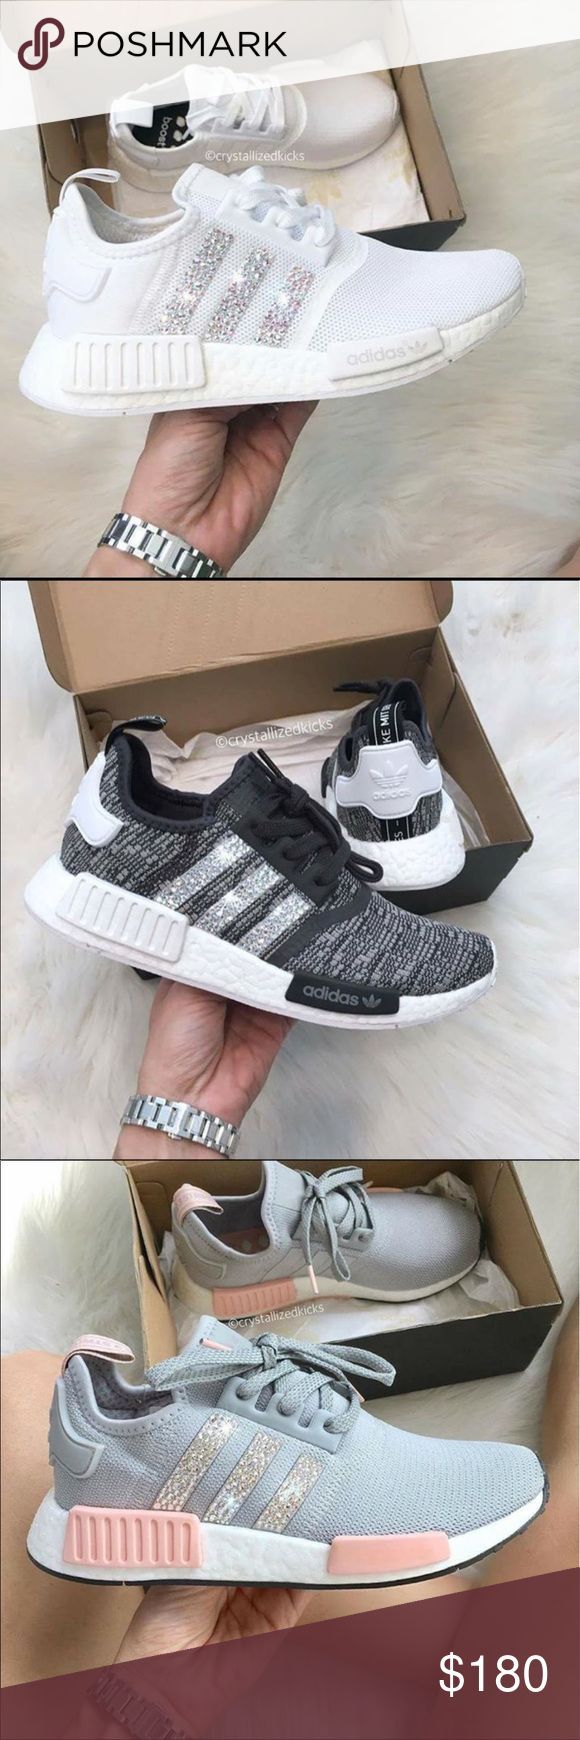 Adidas Women Shoes - Nmd Bling Bling!! Ladies!!! Hurry and grab your pair while supplies last!! Adidas Shoes Athletic Shoes - We reveal the news in sneakers for spring summer 2017